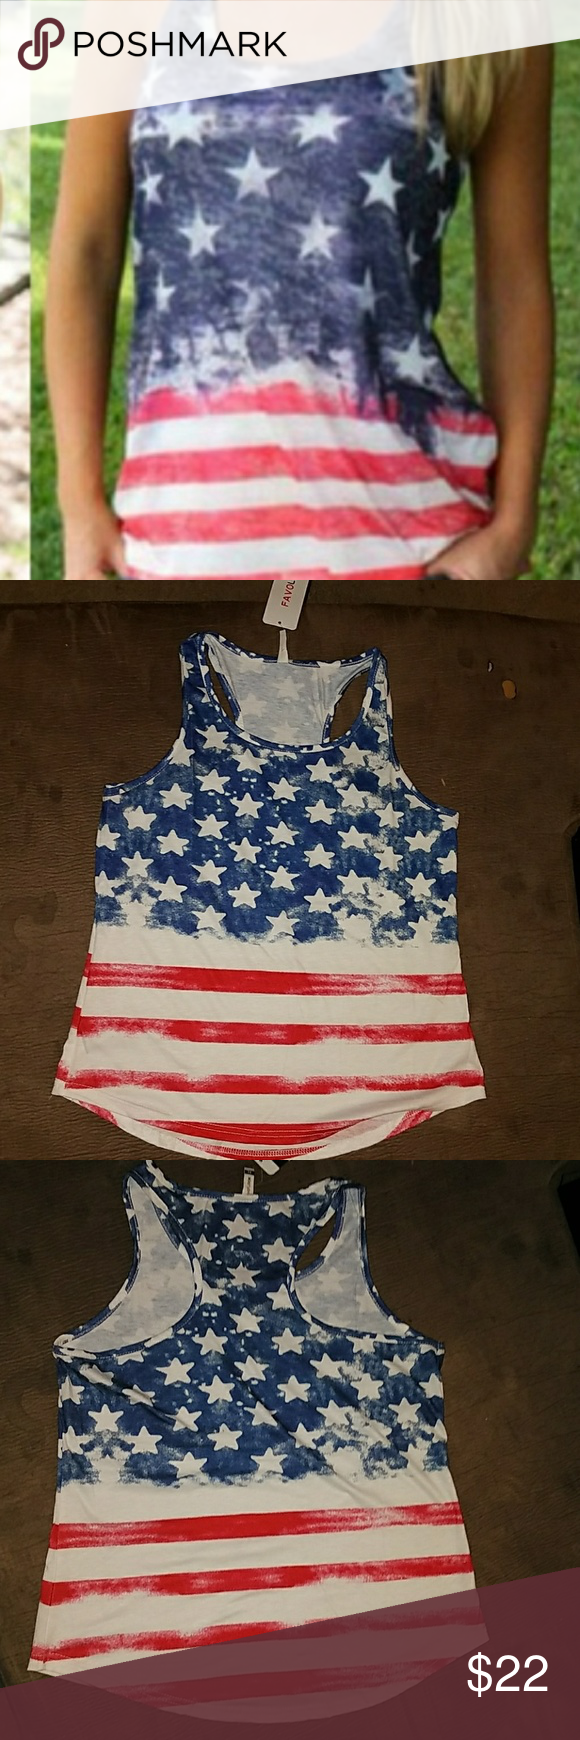 🇺🇸***stylish sexy and proud ***🇺🇸 NWT American flag tank top perfect for summer holiday or anytime size  XL fits more like a L new still in bag FAVLOOK Tops Tank Tops